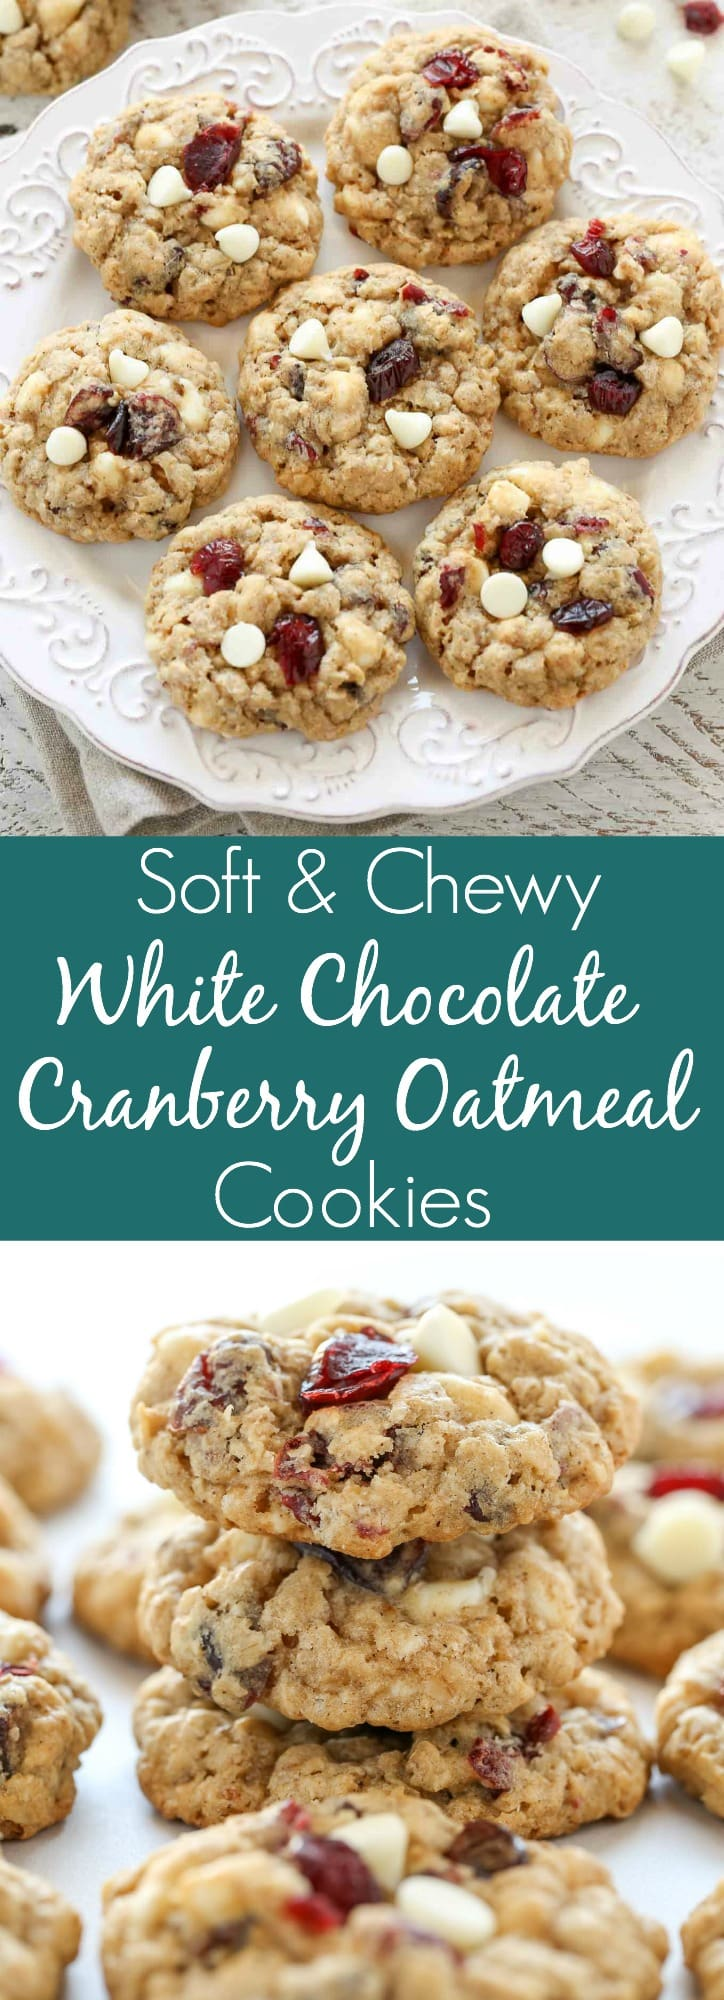 Easy soft and chewy oatmeal cookies packed with white chocolate chips and dried cranberries. These White Chocolate Cranberry Oatmeal Cookies are a perfect treat for the holidays!